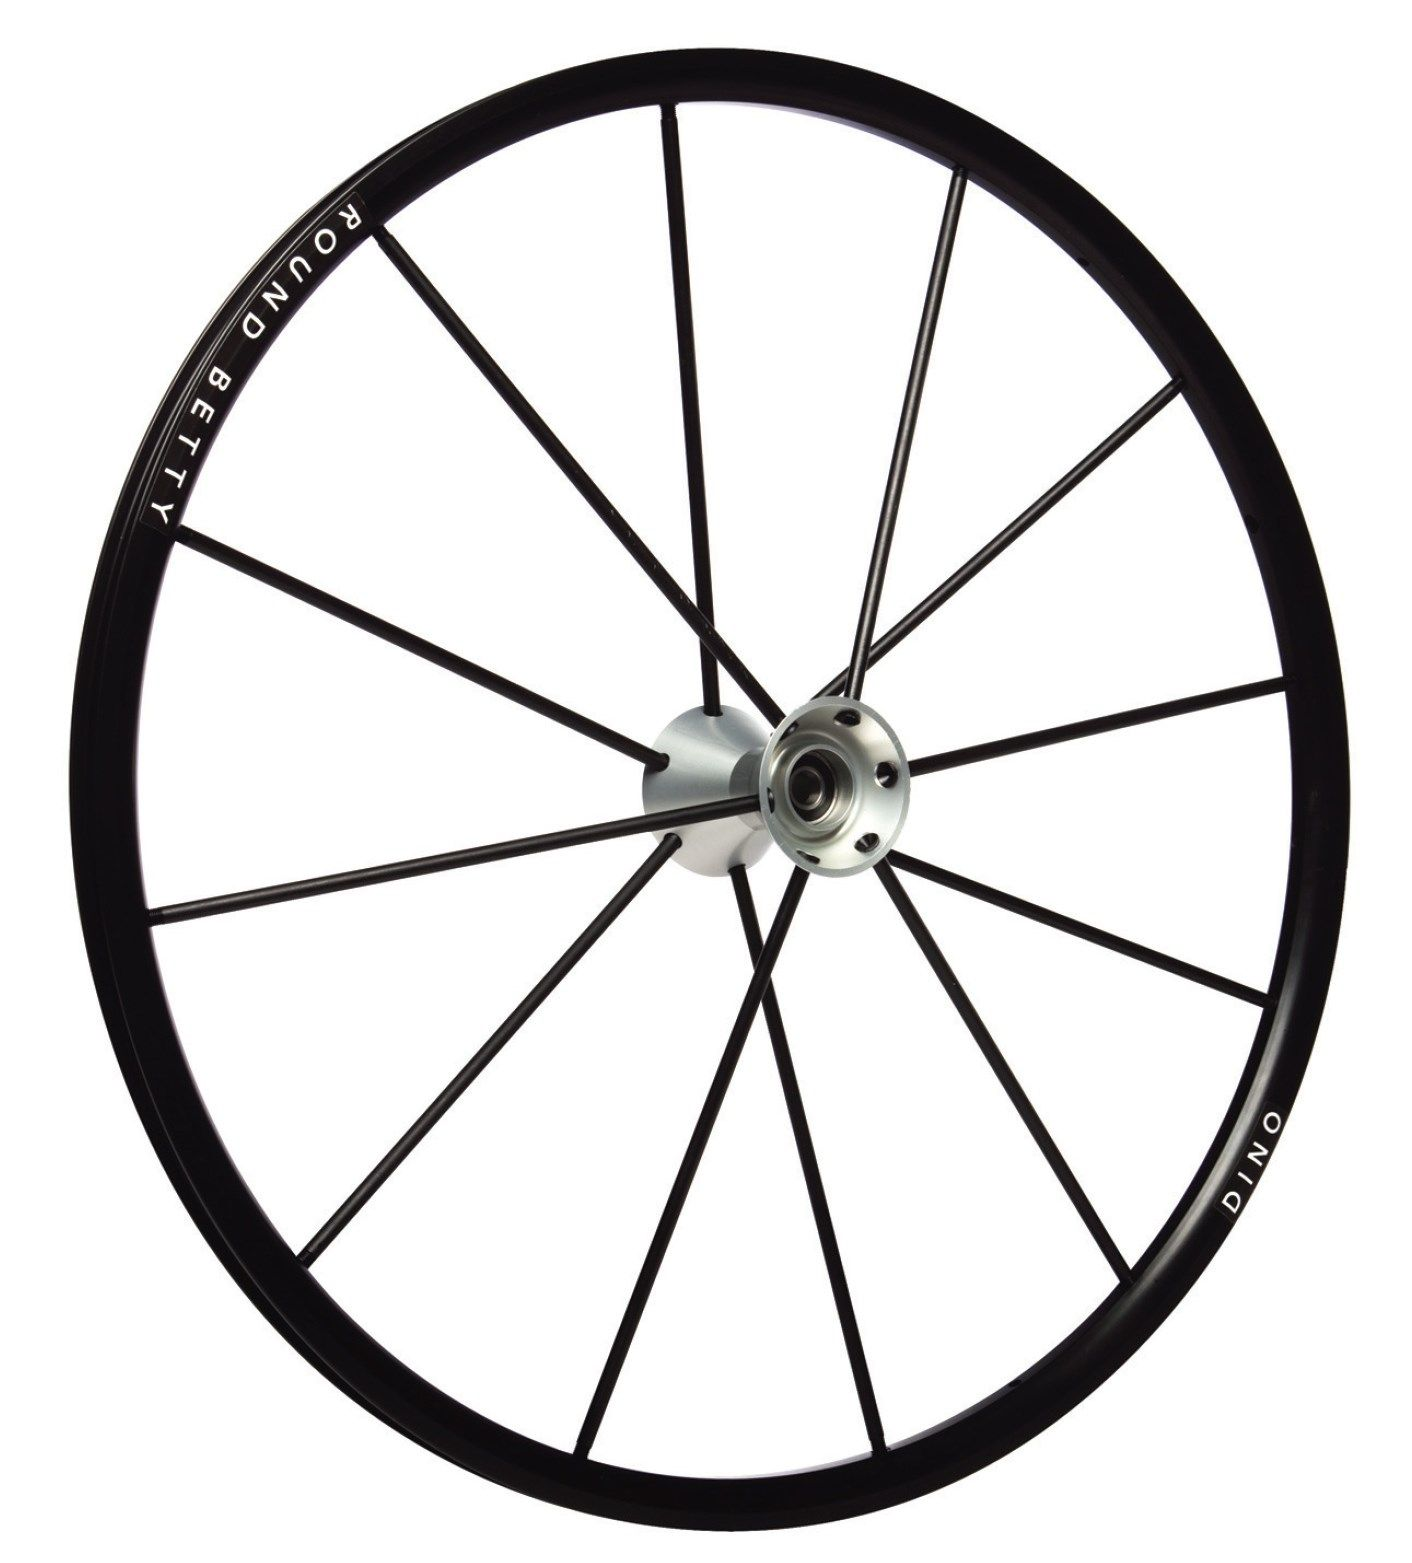 "25"" Round Betty Dino Wheel - Black Rim, Silver Hub, 12 Spokes DINS-25"